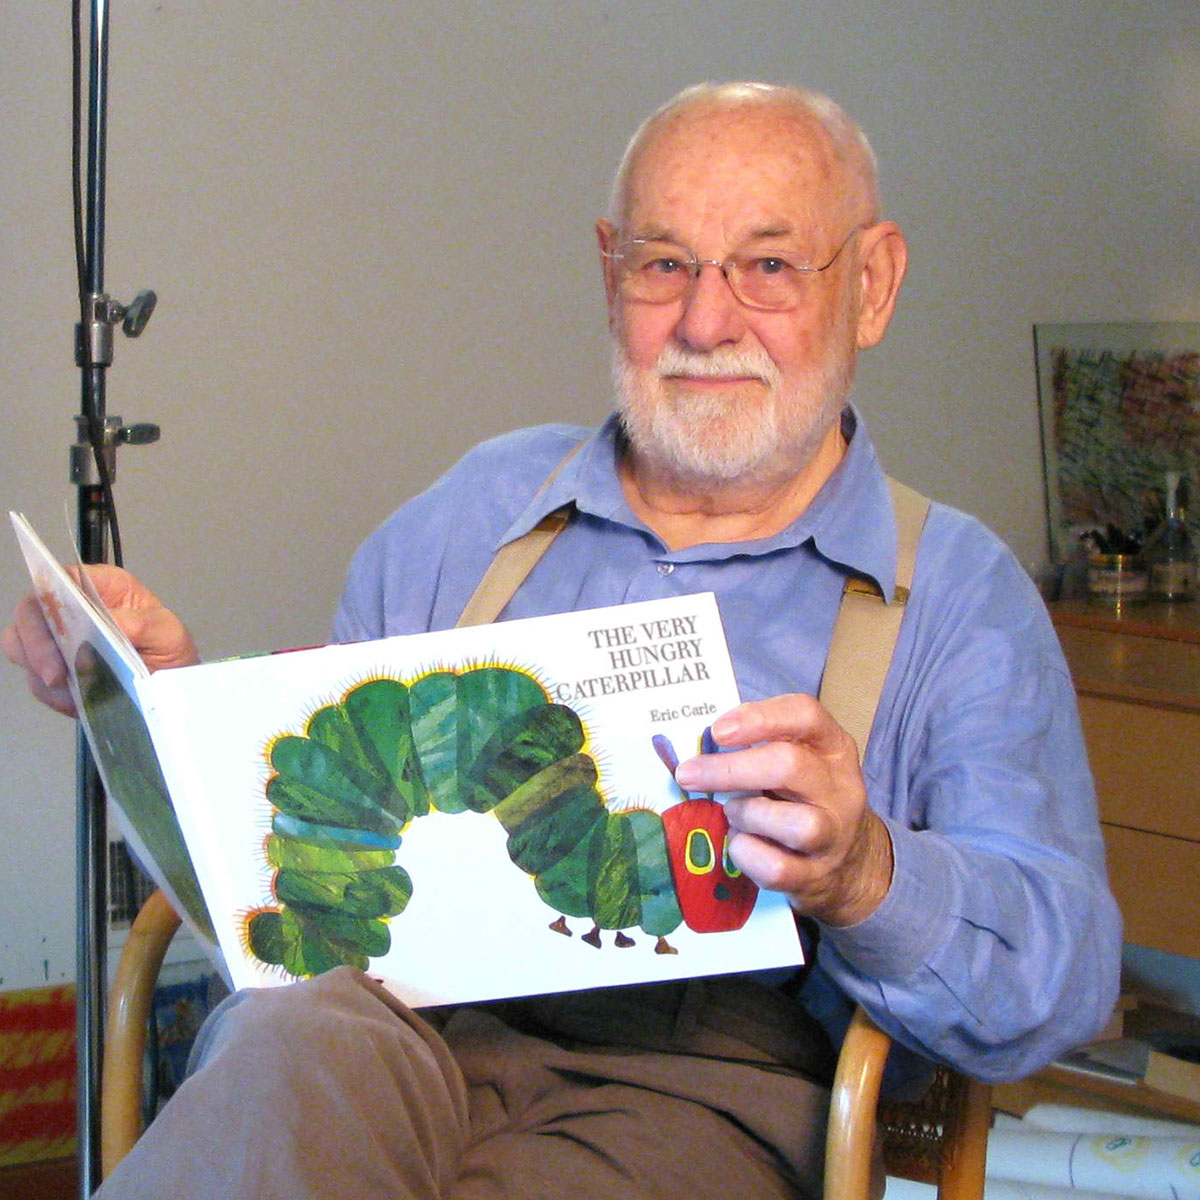 Eric Carle Reading The Very Hungry Caterpillar